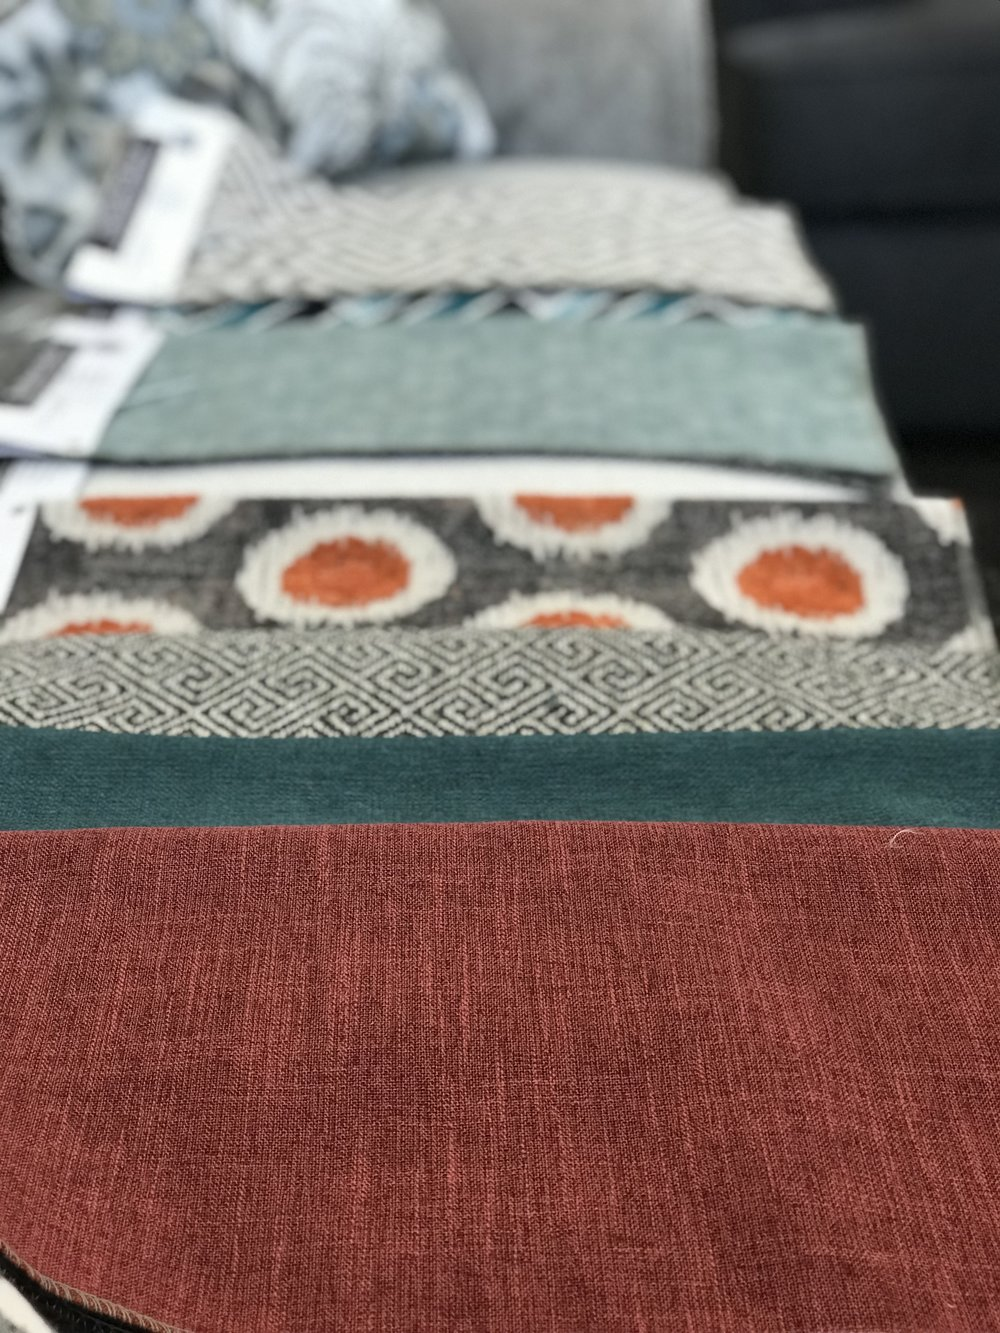 Prairie Collection Custom Furniture Fabric Options, available at Prairie Gardens in Champaign, IL